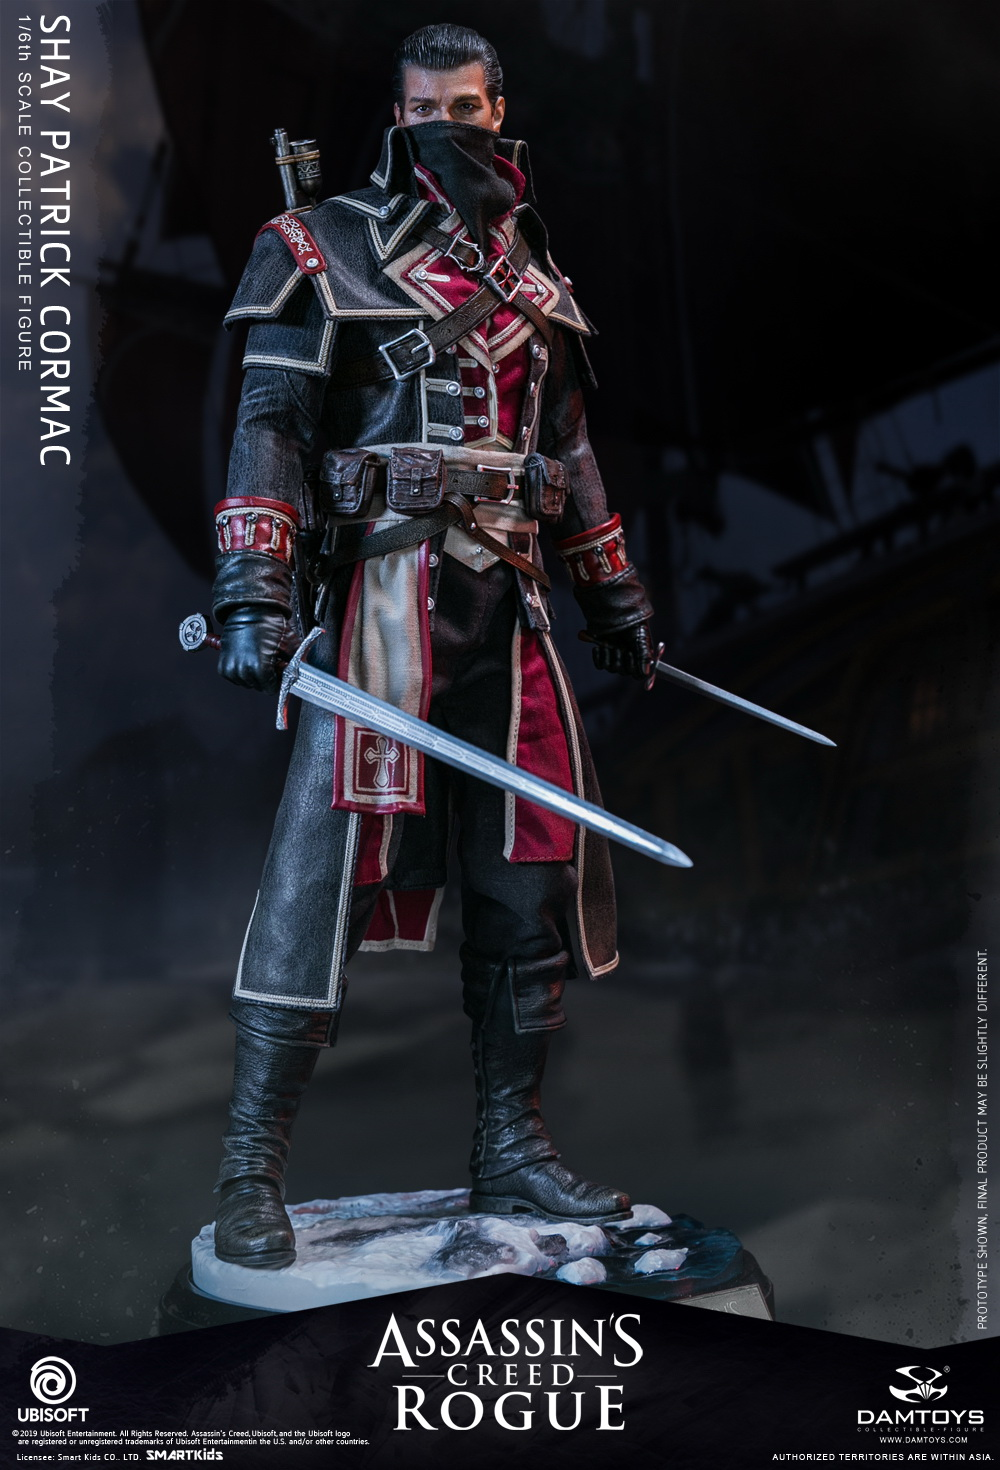 Pre-Order Dam Toys Assassins Creed Shay Patrick Cormac Figure